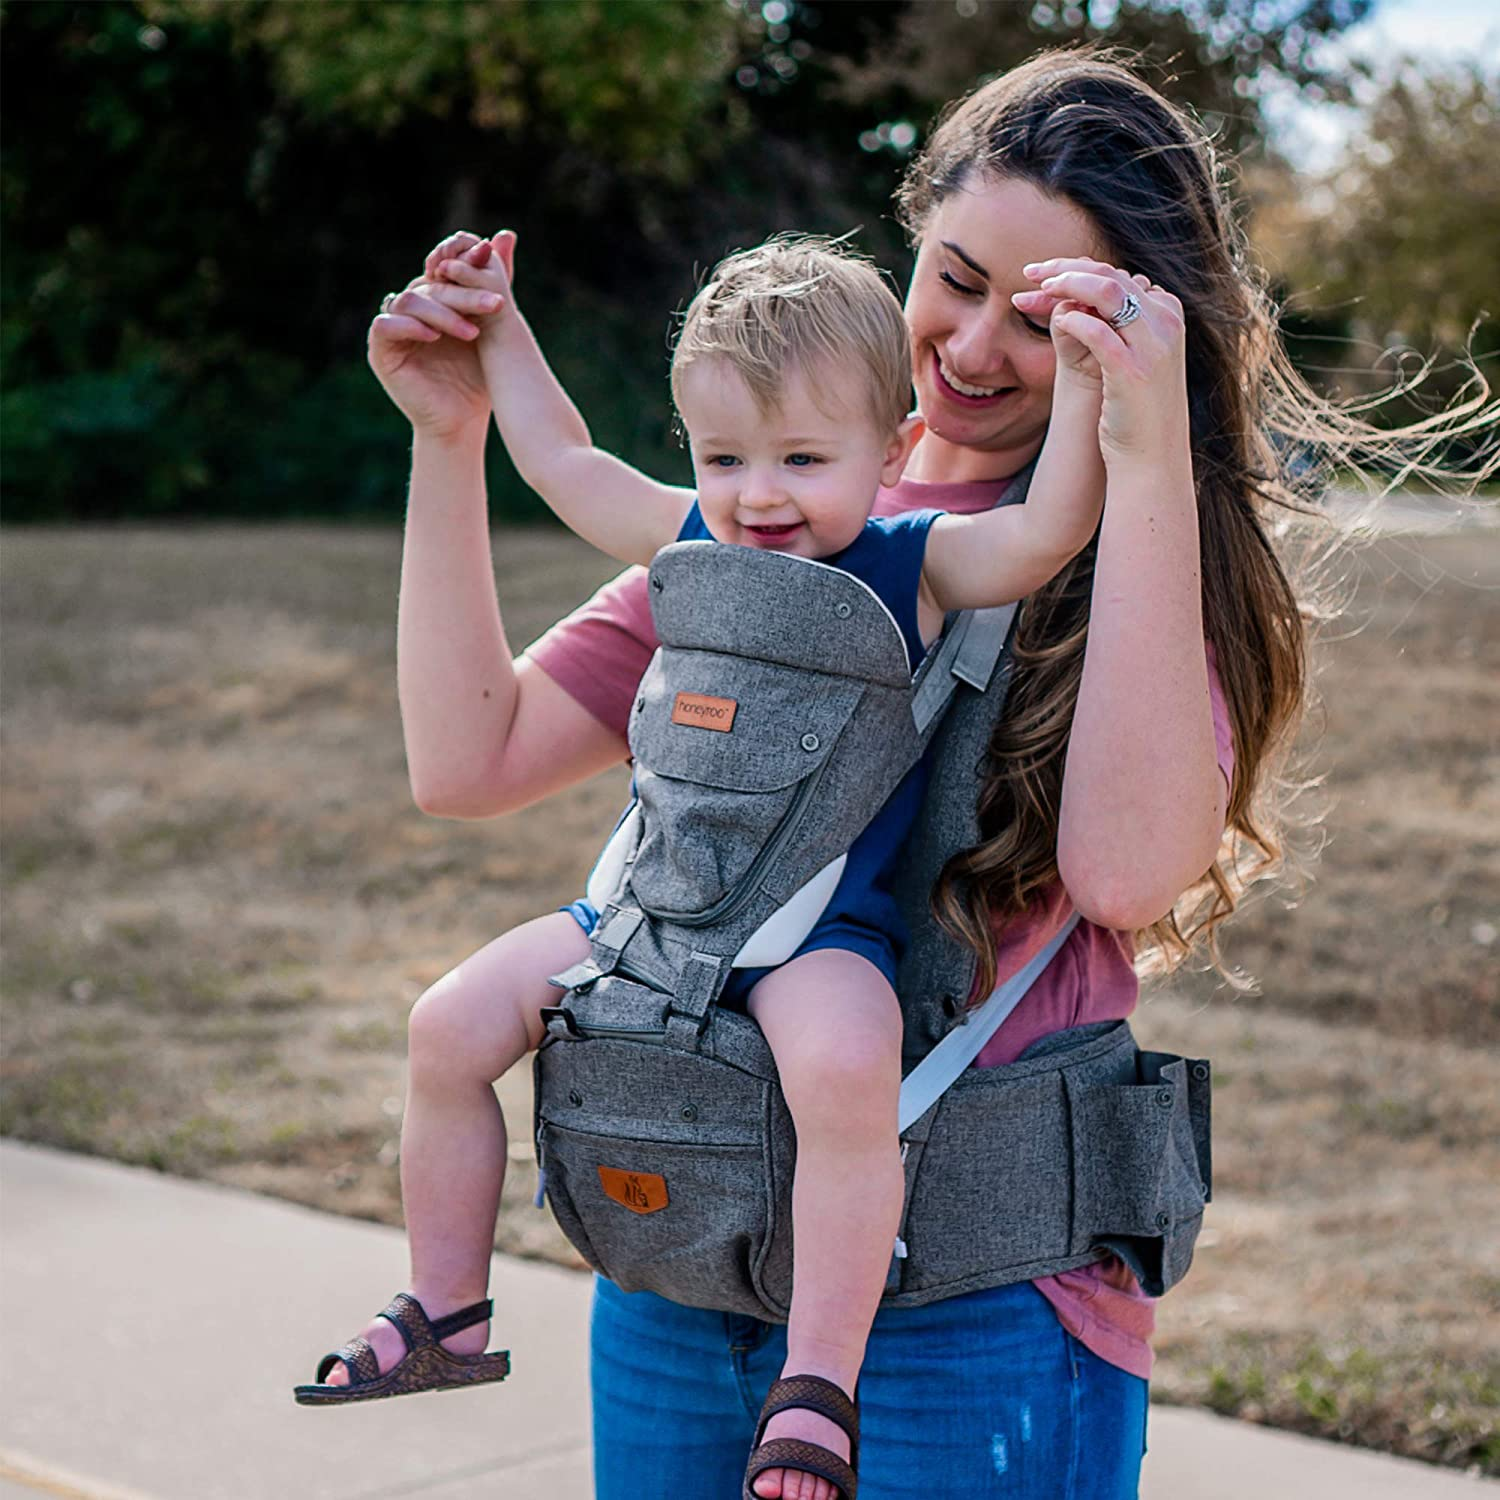 Front and Back Carry Ergonomic 3D Hip Seat Baby Carrier honeyroo Joey Classic Safety Standards 3-36 Months Platinum Gray 6 in 1 Position Design Light Weight and Breathable Approved by U.S